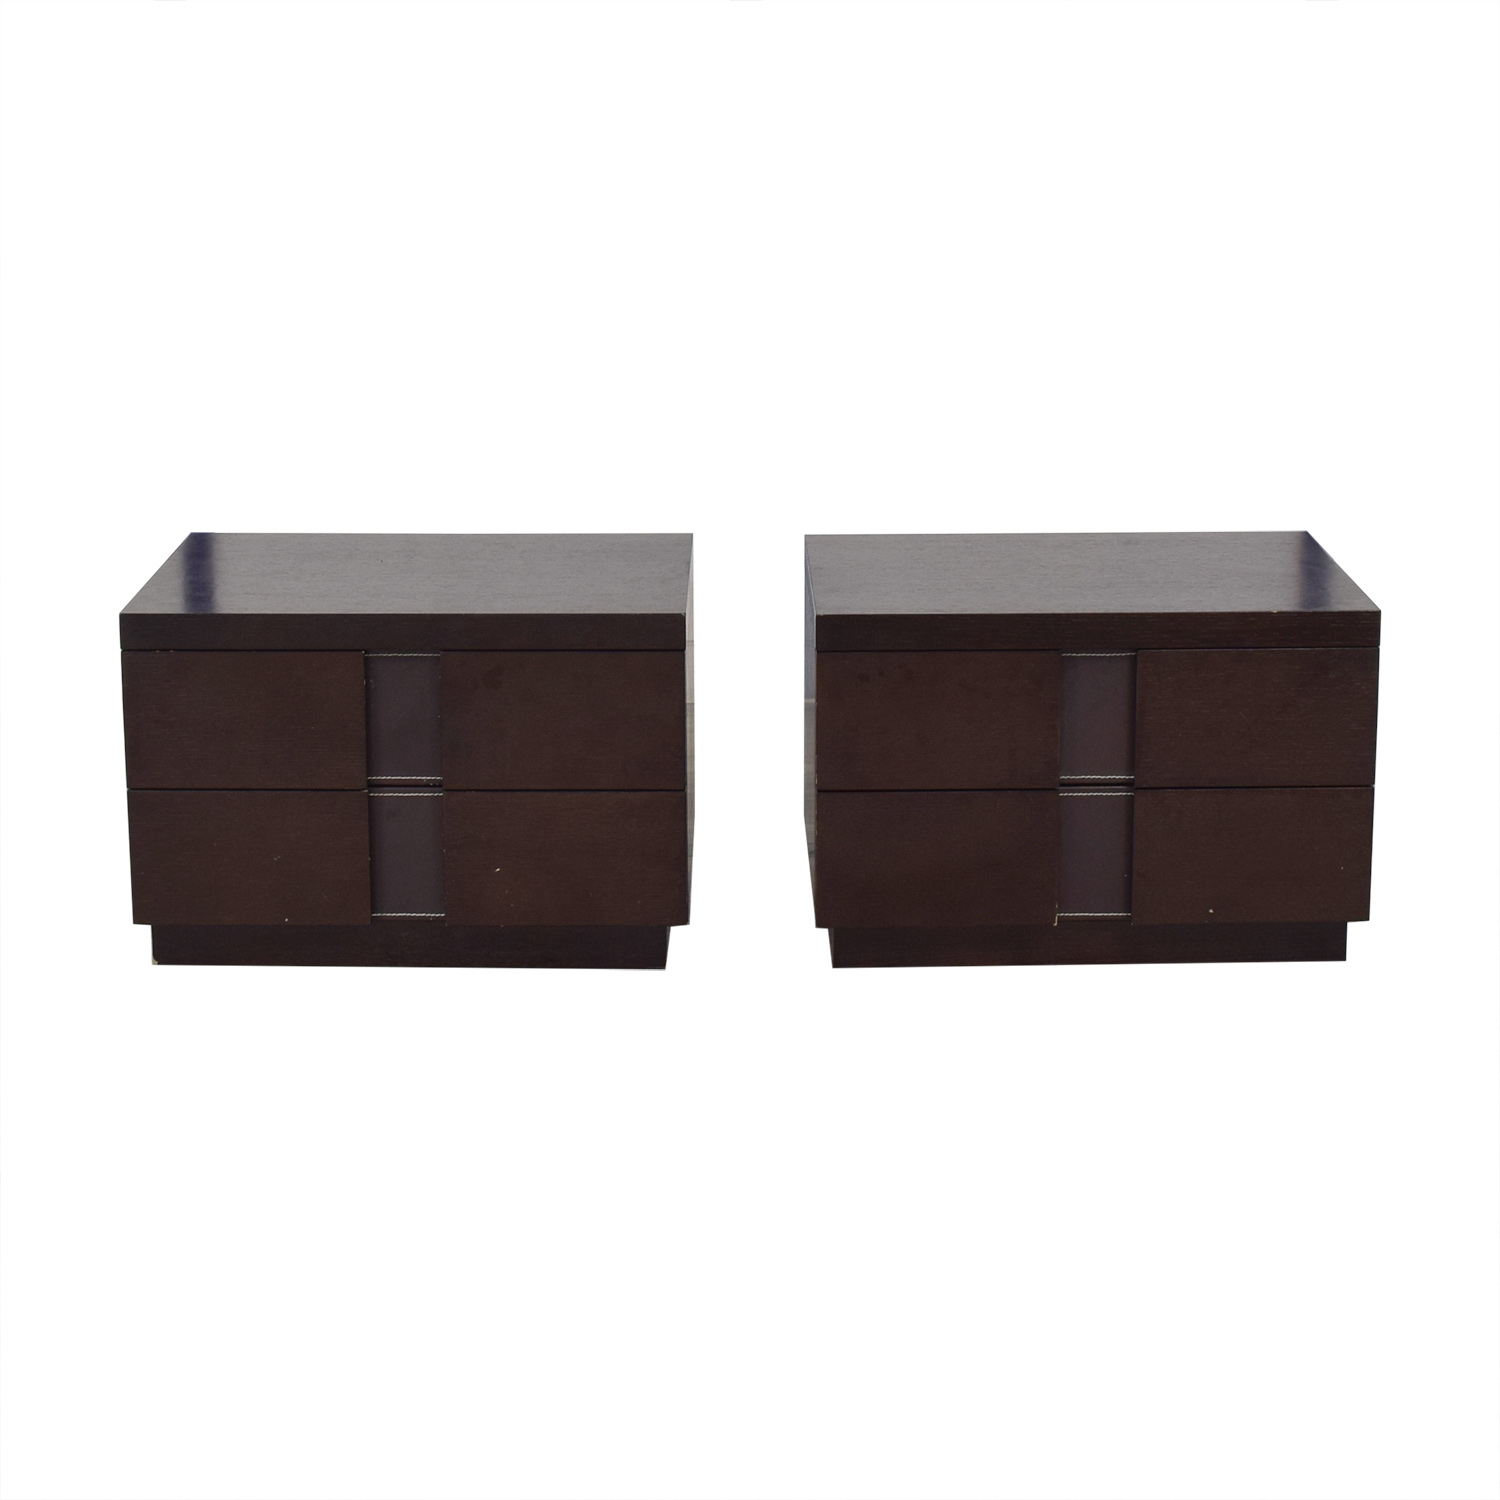 J&M Furniture J&M Furniture Two Drawer Nightstands End Tables